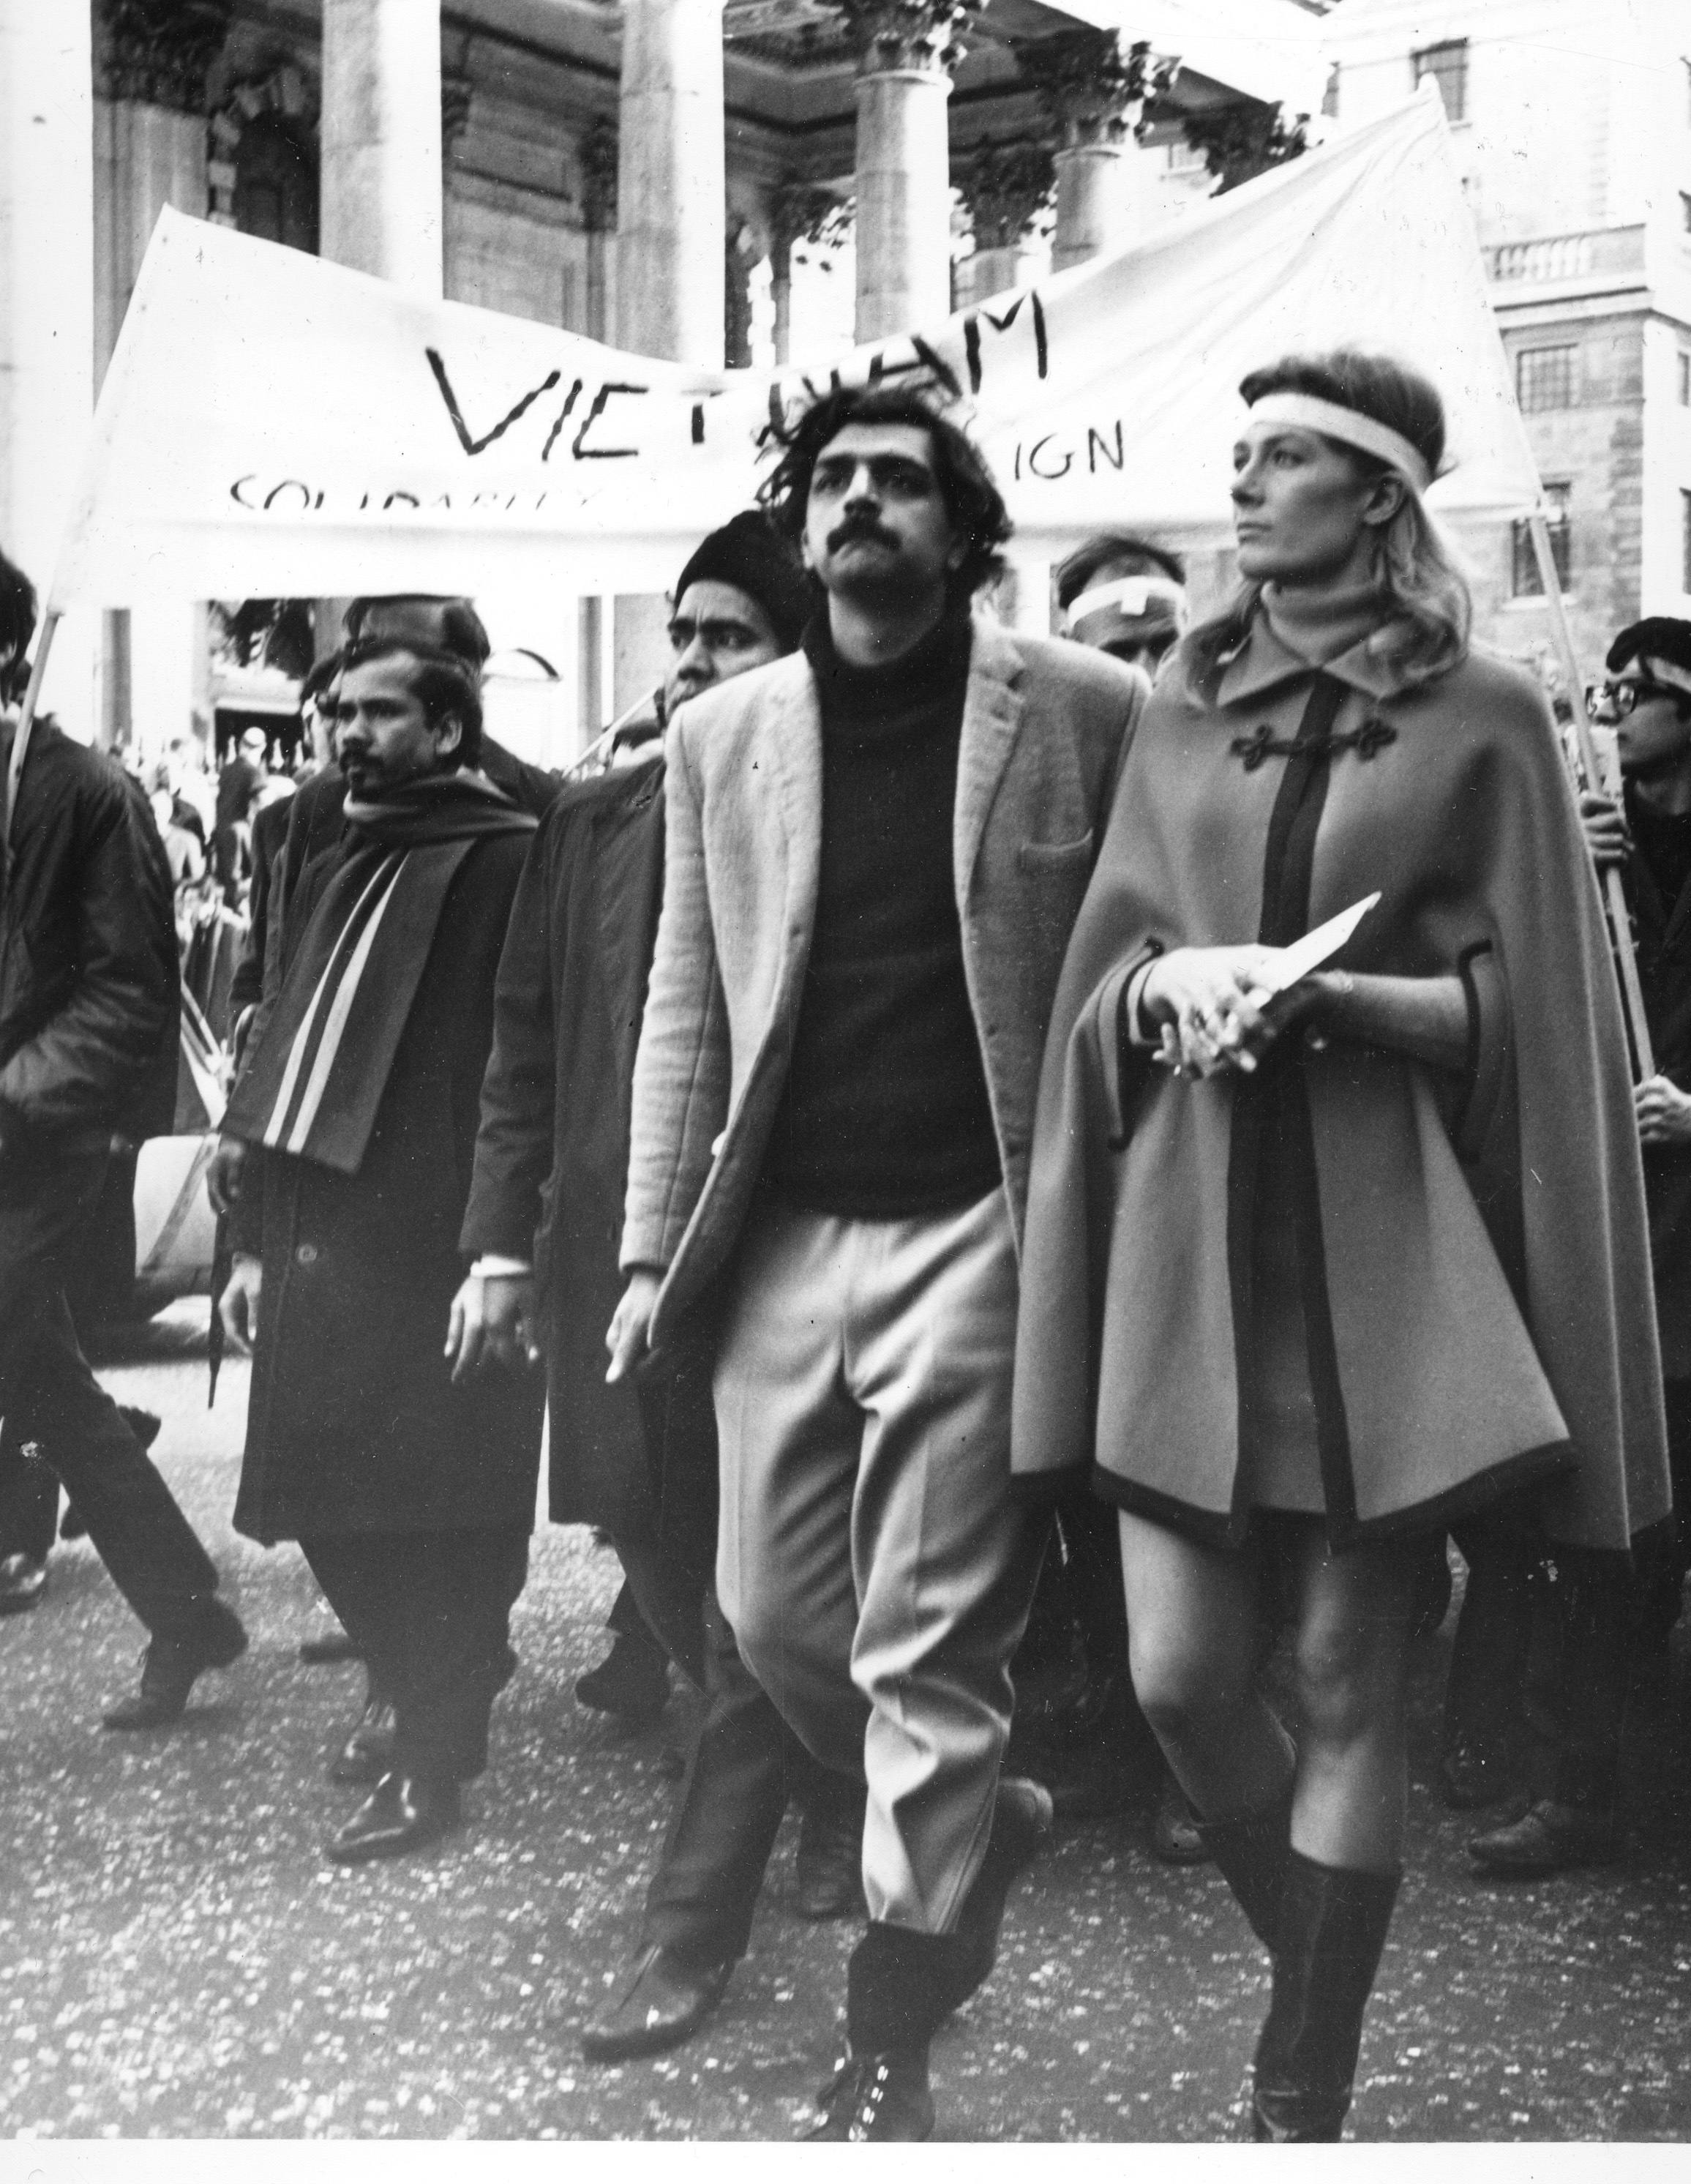 Actress Vanessa Redgrave, right, leads anti-Vietnam War demonstrators as they march towards the U.S. Embassy at Grosvenor Square after a massive rally in Trafalgar Square in London, England, on March 17, 1966. Redgrave holds a letter addressed to the U.S. Ambassador. The man next to her is Tariq Ali, a Pakistani citizen, who is chairman of the organizing committee for the protest. (AP Photo)